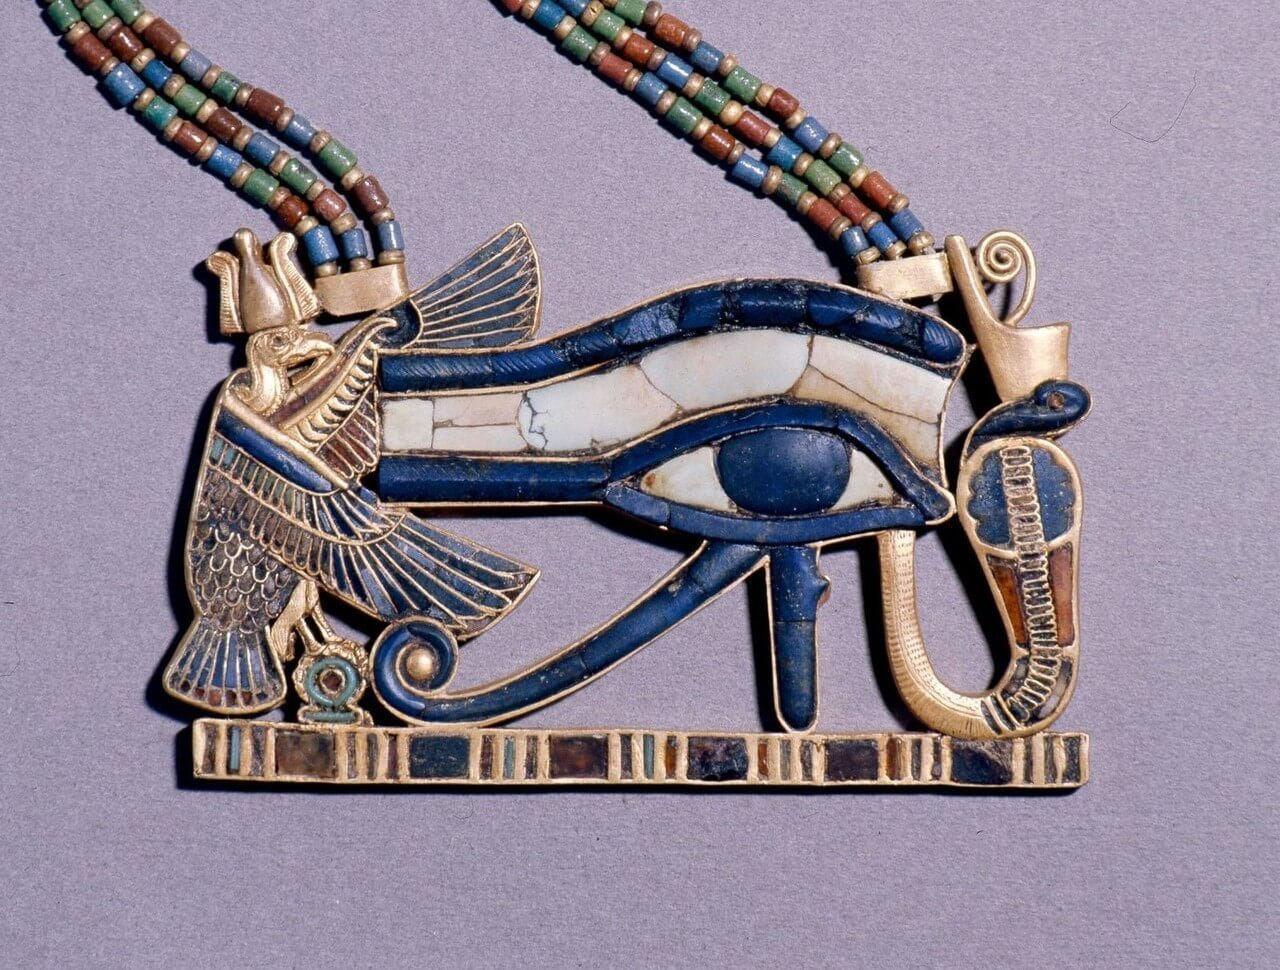 Wadjet Eye Pectoral, found on the mummy of the king Tutankhamun, symbol of  the entity of the body [1280-970]: ArtefactPorn